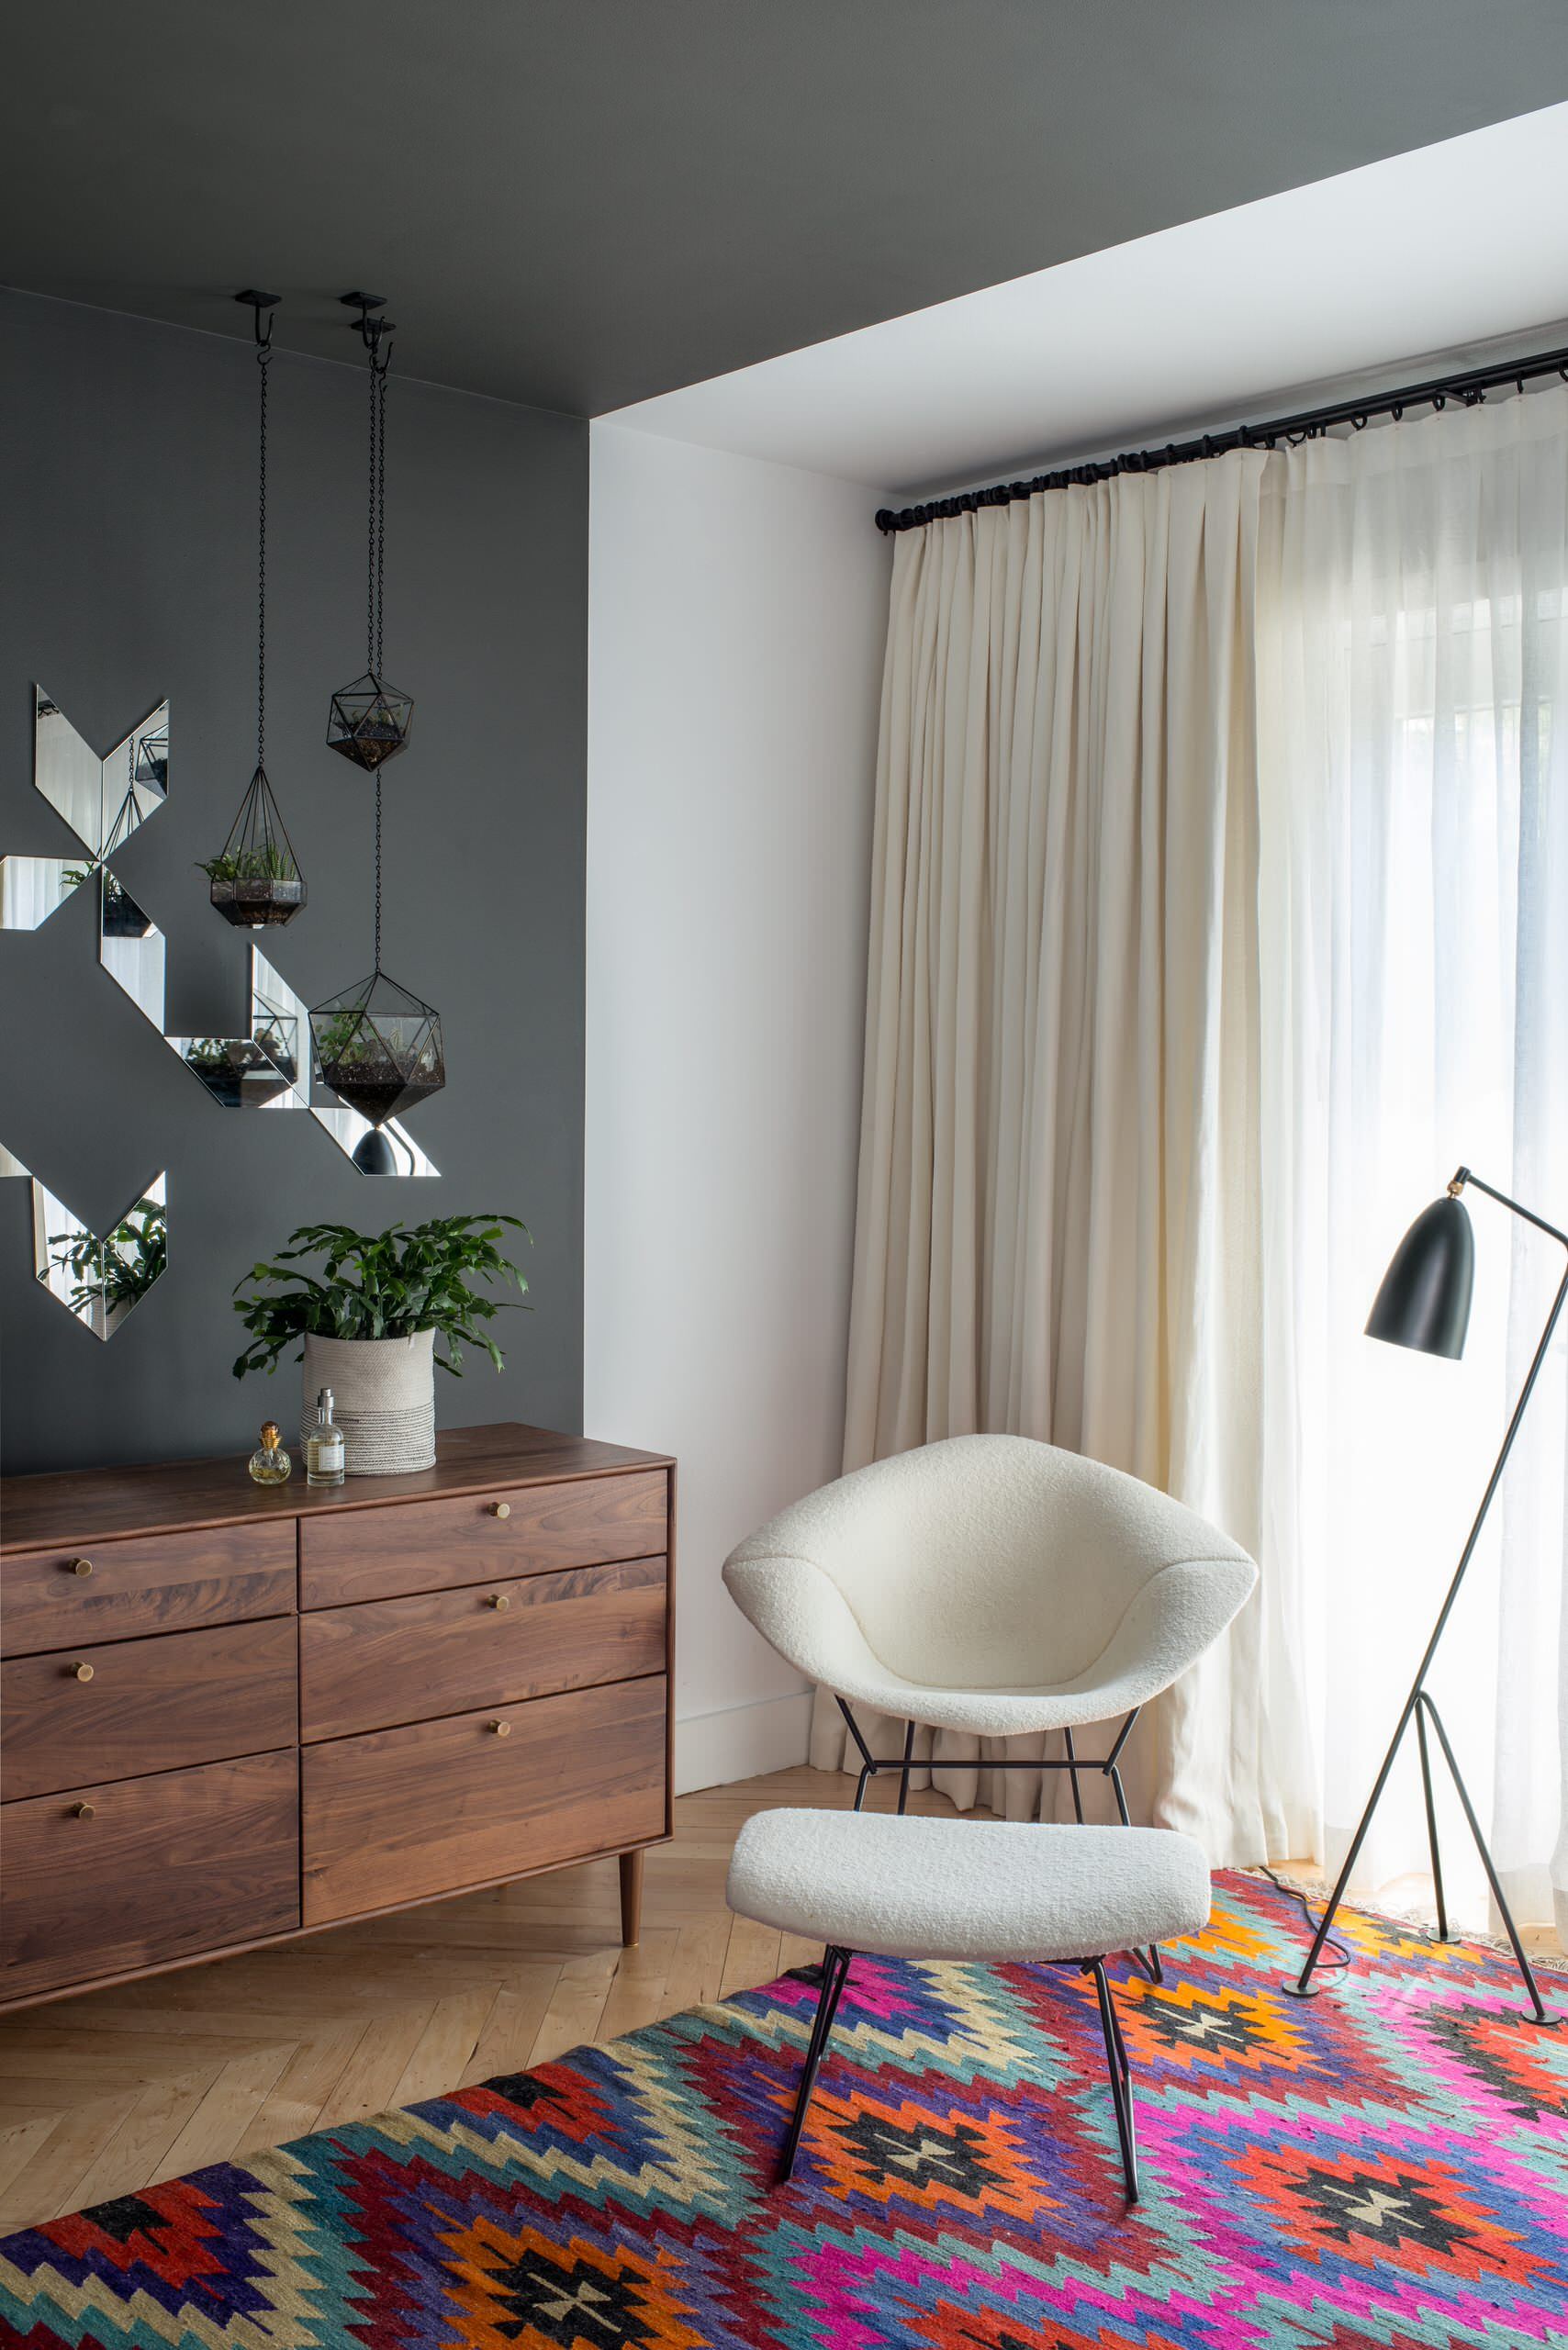 To Turn Your House Into A Home Simple Living Room Simple Living Room Ideas To Turn Your House Into A Home Simple Living Room Ideas To Turn Your House Into A Home7